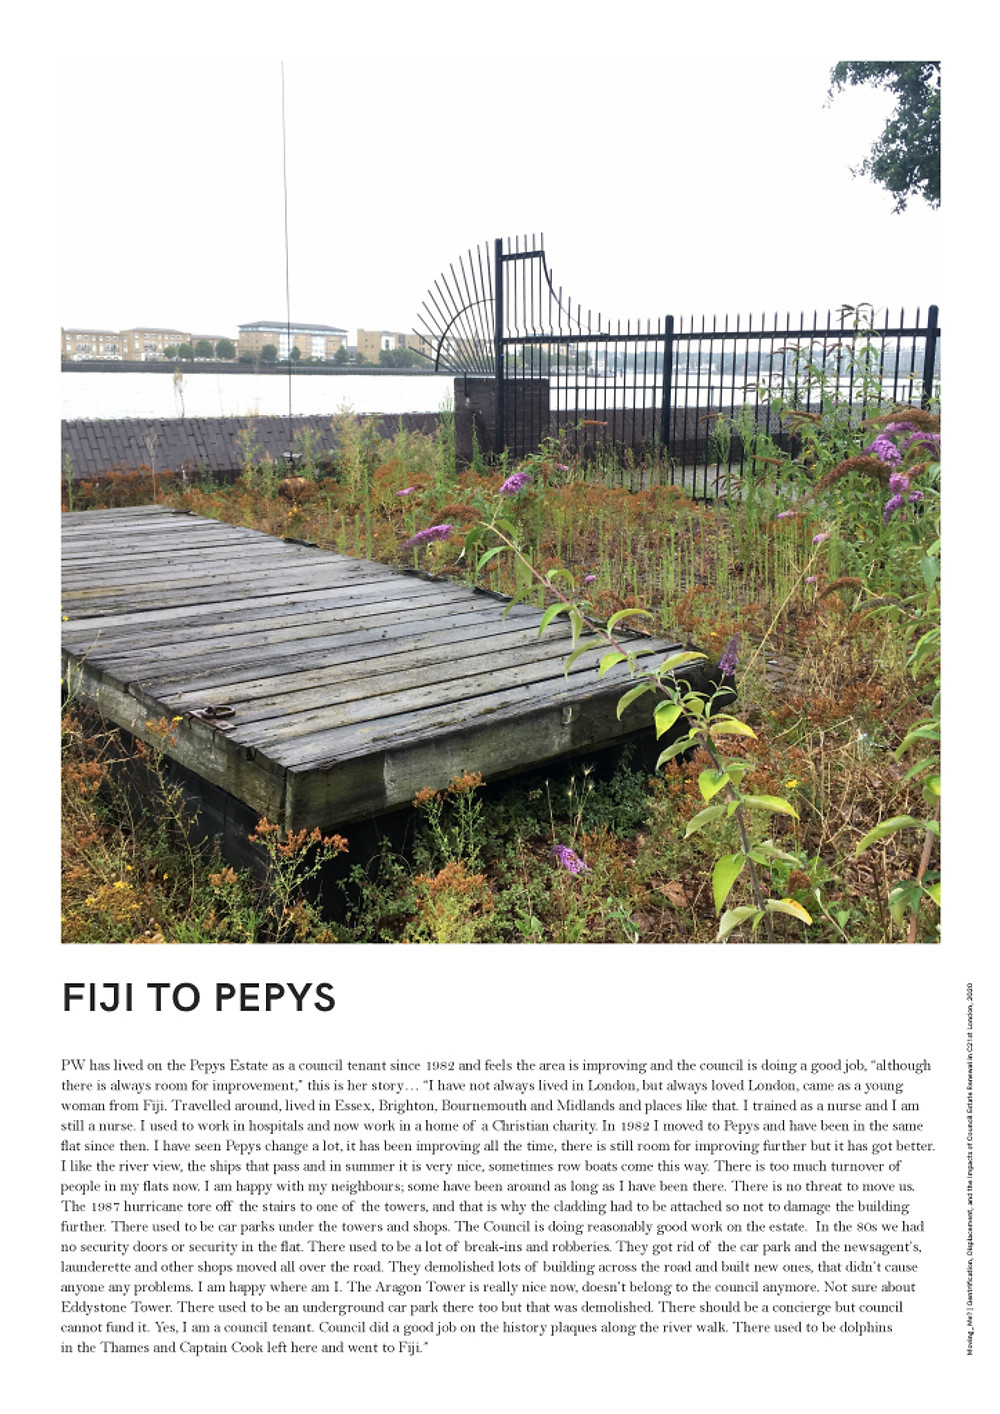 """PW has lived on the Pepys Estate as a council tenant since 1982 and feels the area is improving and the council is doing a good job, """"although there is always room for improvement,"""" this is her story..."""